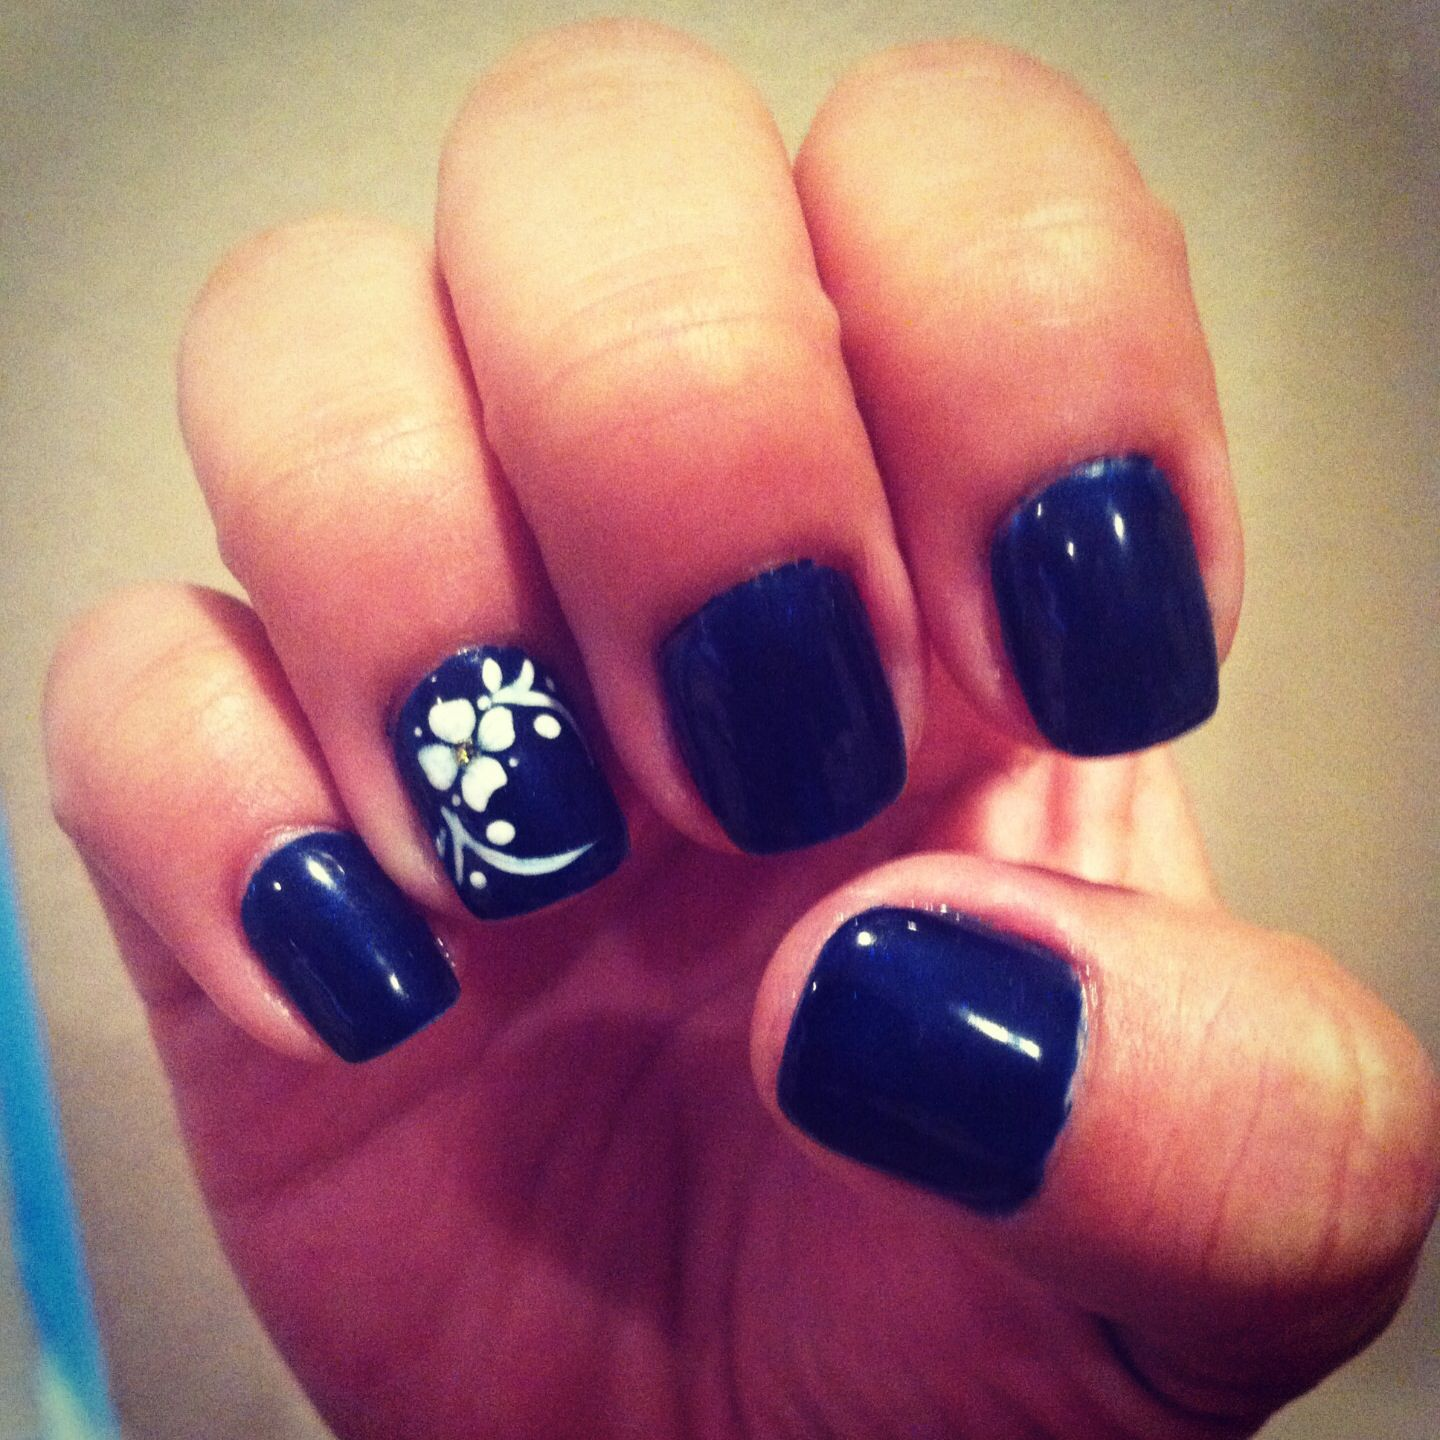 Nail Art On Navy Blue Nails: Navy Blue Gel Nails With White Flower Design